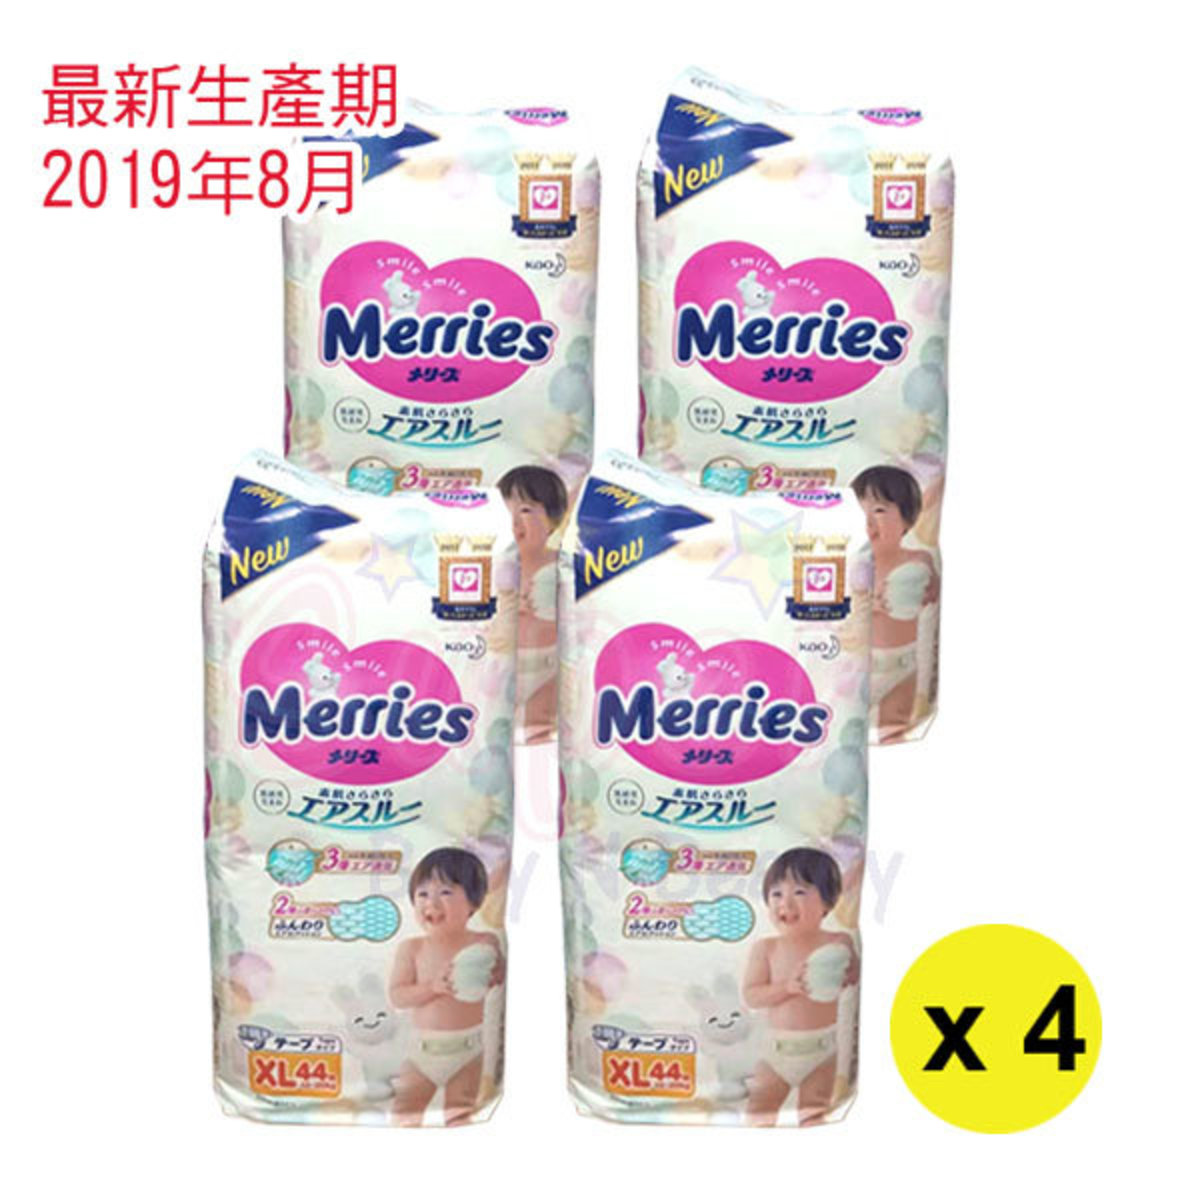 Merries Tapes XL44pcs x 4 packs  (parallel import goods)